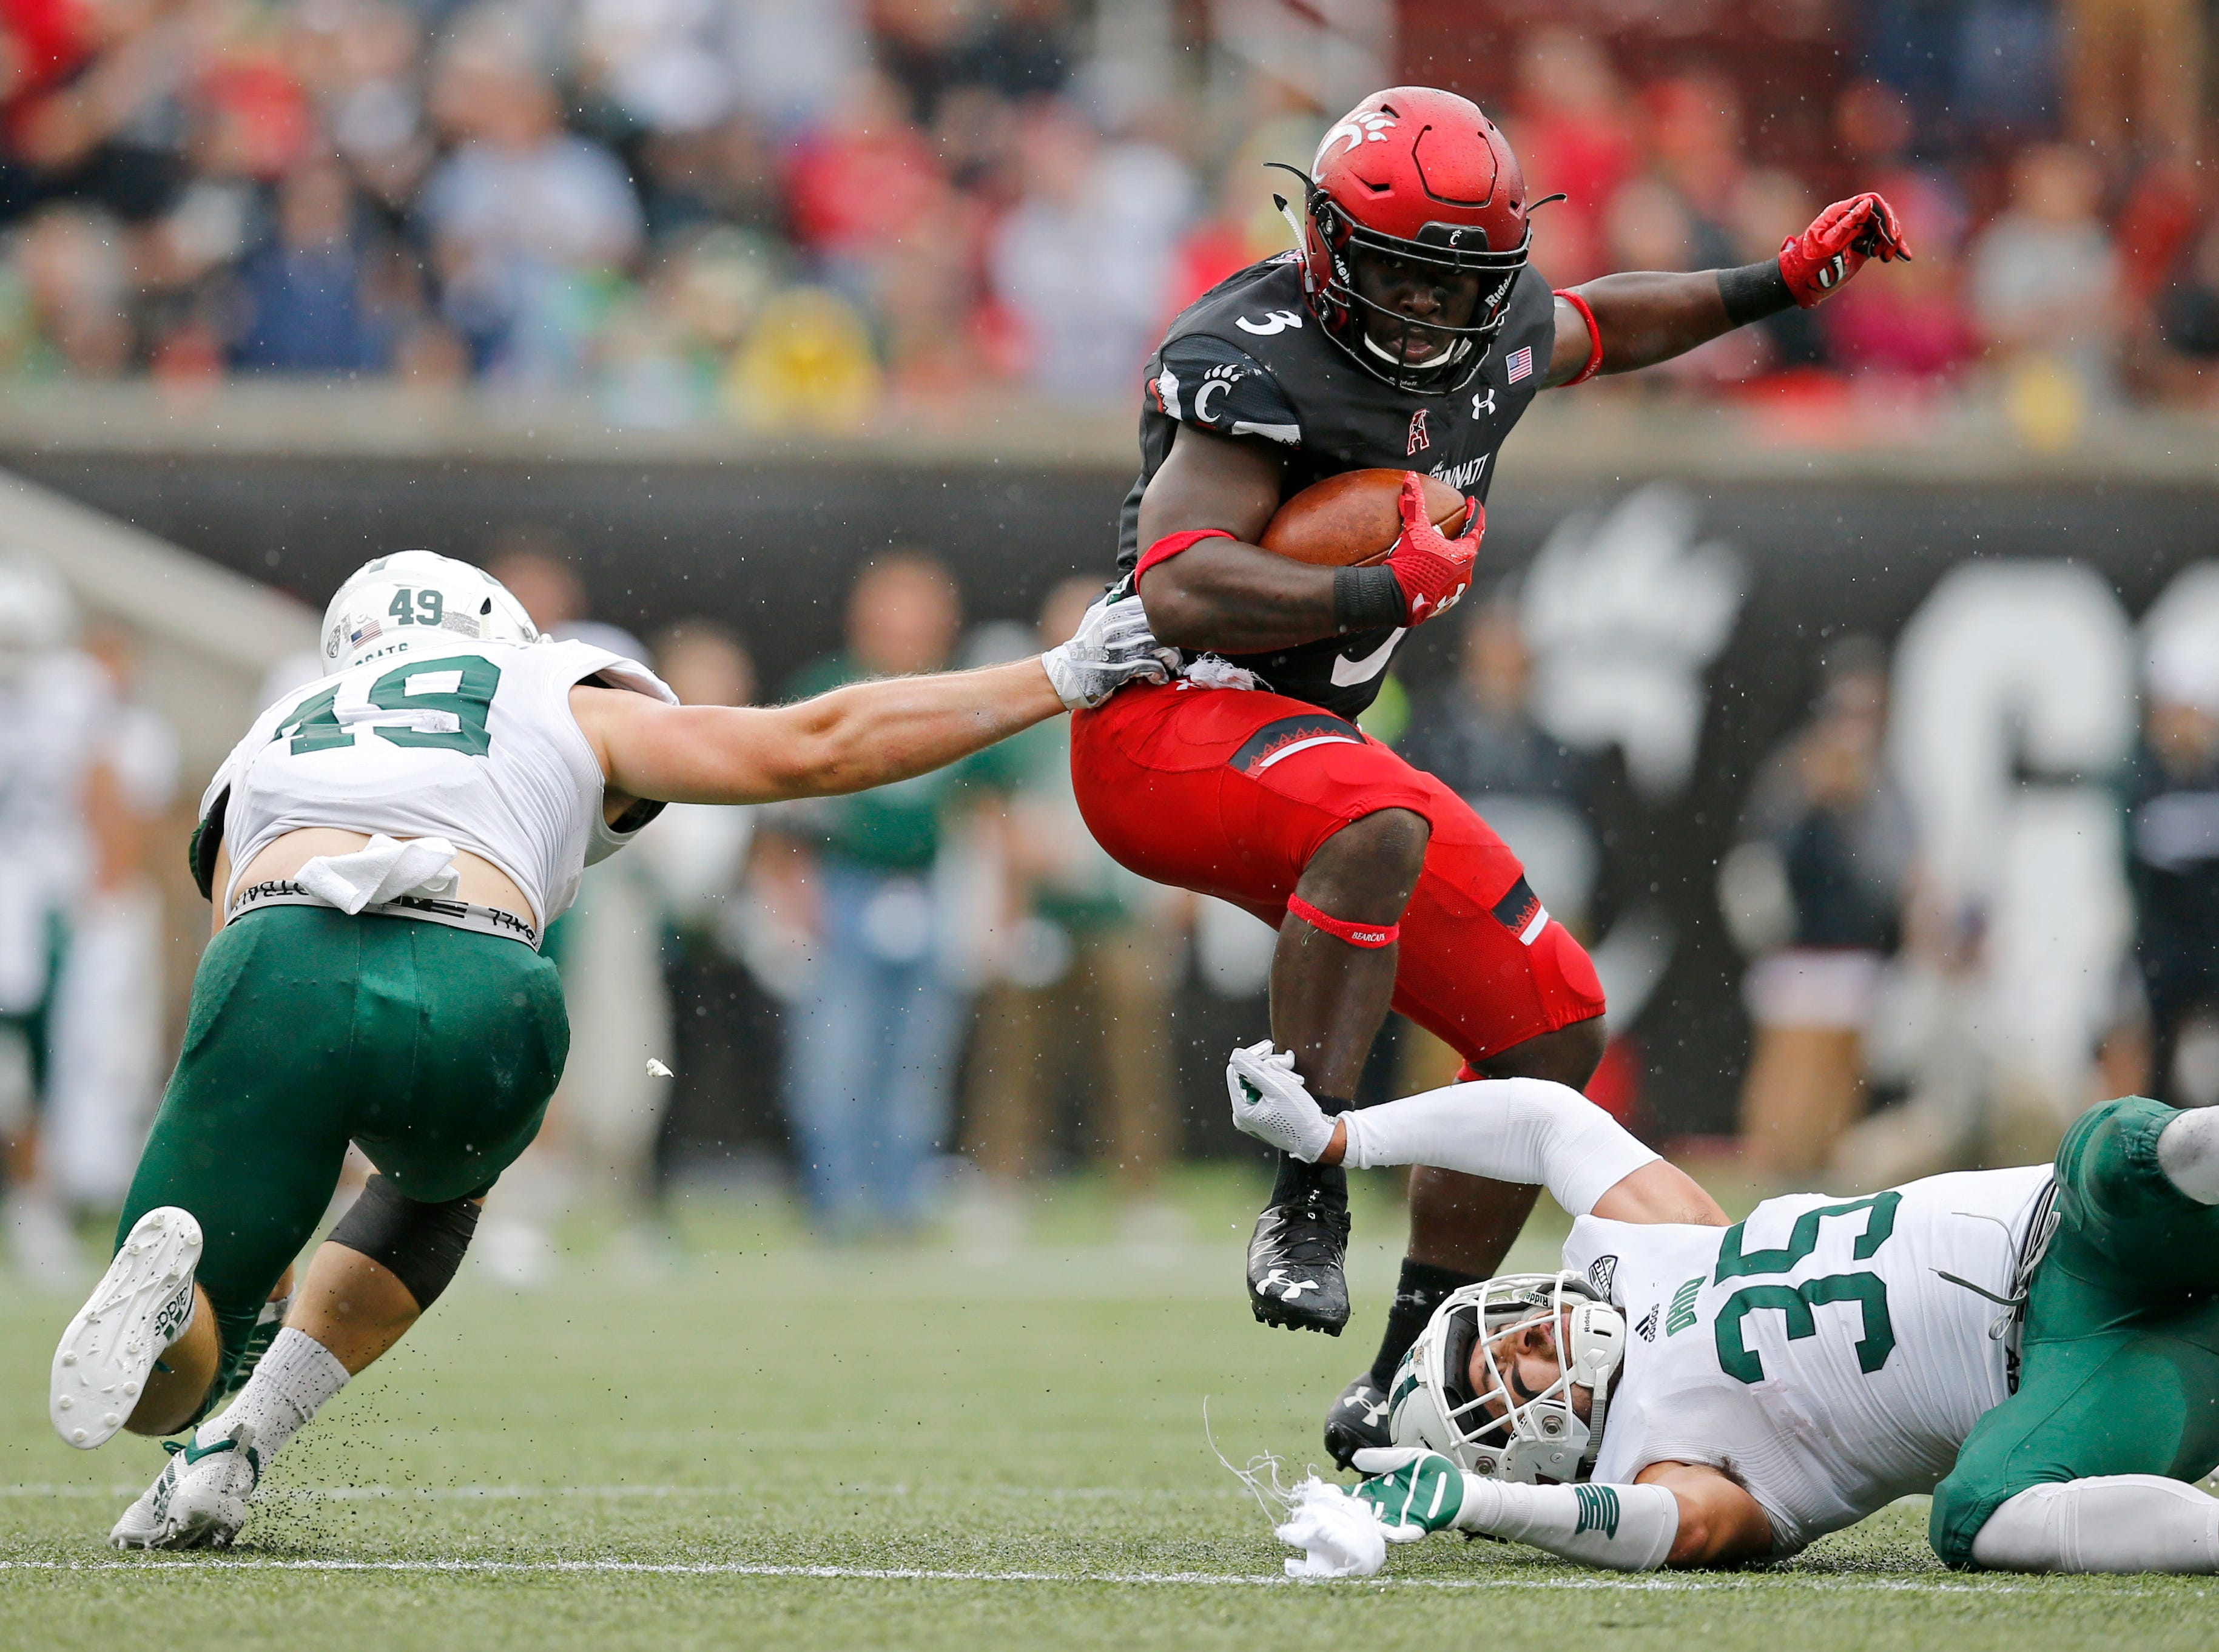 Cincinnati Bearcats running back Michael Warren II (3) evades tackles on a carry in the third quarter of the NCAA football game between the Cincinnati Bearcats and the Ohio Bobcats at Nippert Stadium on the University of Cincinnati campus in Cincinnati on Saturday, Sept. 22, 2018. The Bearcats overcame a 24-7 deficit at halftime to win 34-30, improving to 4-0 on the season.